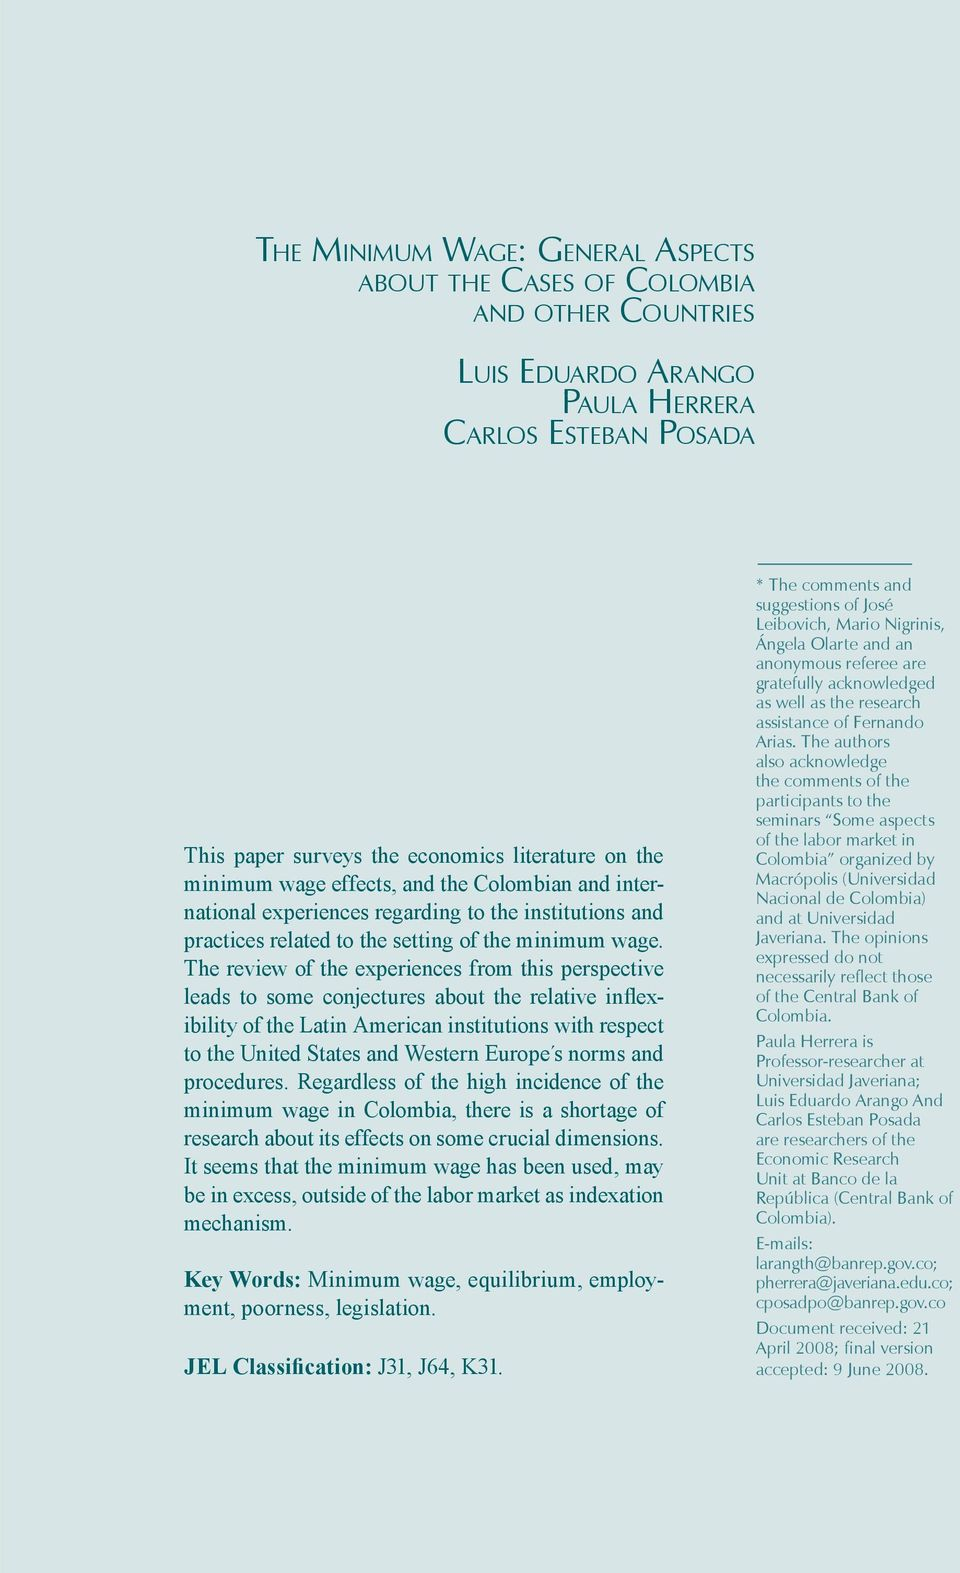 The review of the experiences from this perspective leads to some conjectures about the relative inflexibility of the Latin American institutions with respect to the United States and Western Europe